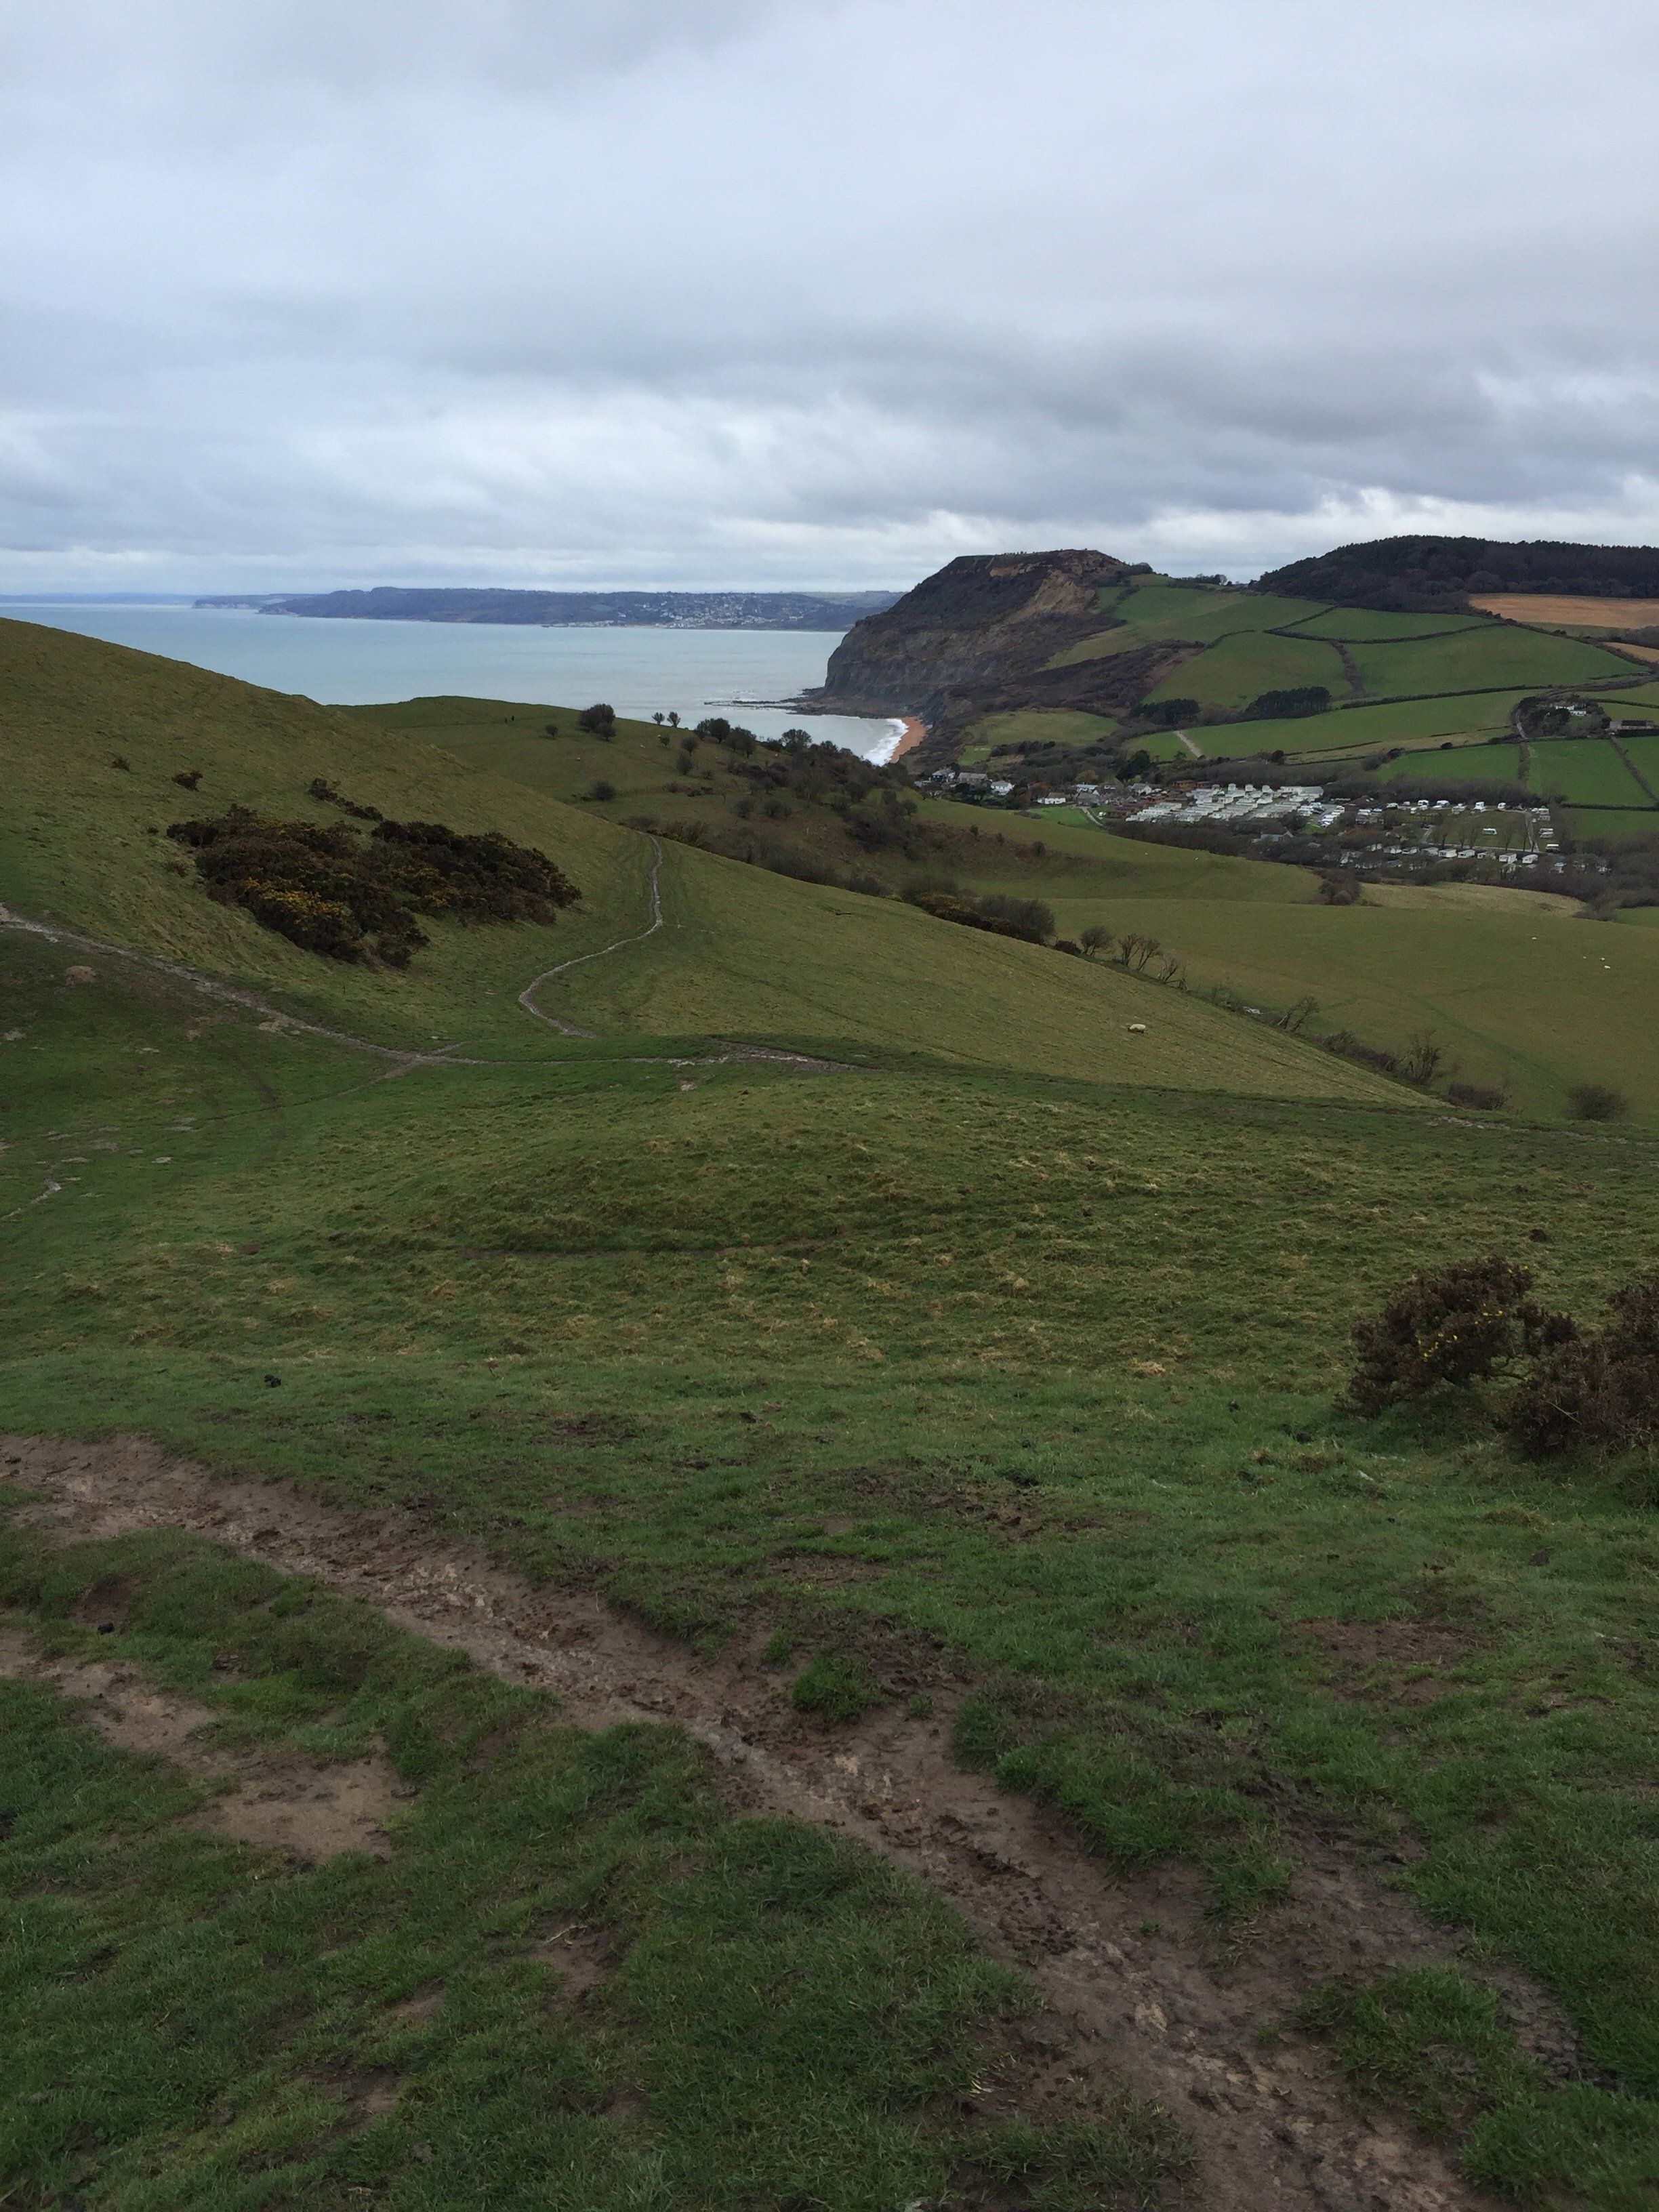 Looking back on how far we've come: Walking the South West Coastal Path walk